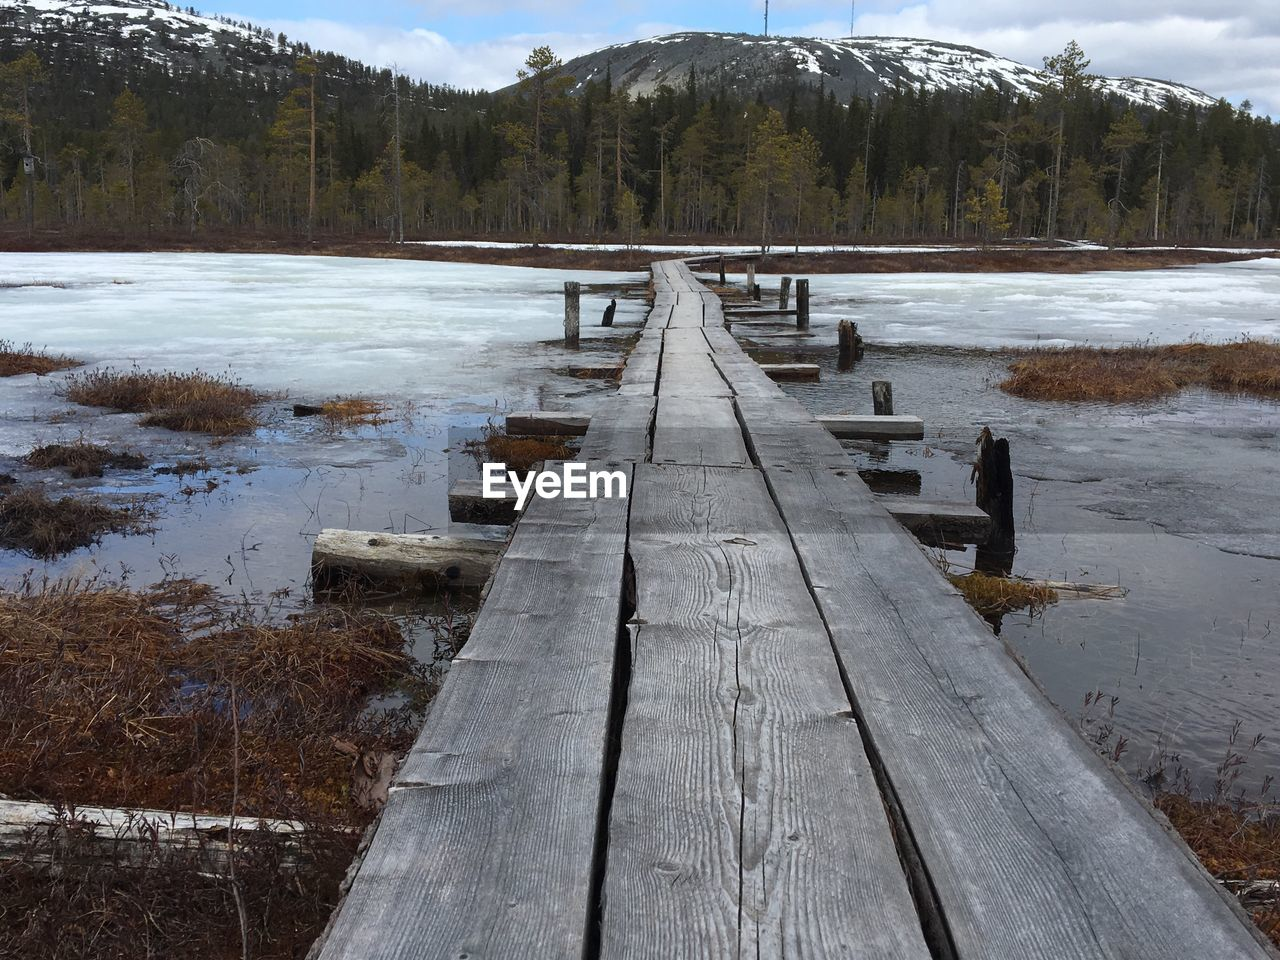 nature, outdoors, water, lake, day, tree, wood - material, cold temperature, winter, snow, scenics, tranquility, tranquil scene, mountain, no people, beauty in nature, jetty, frozen, landscape, mountain range, forest, sky